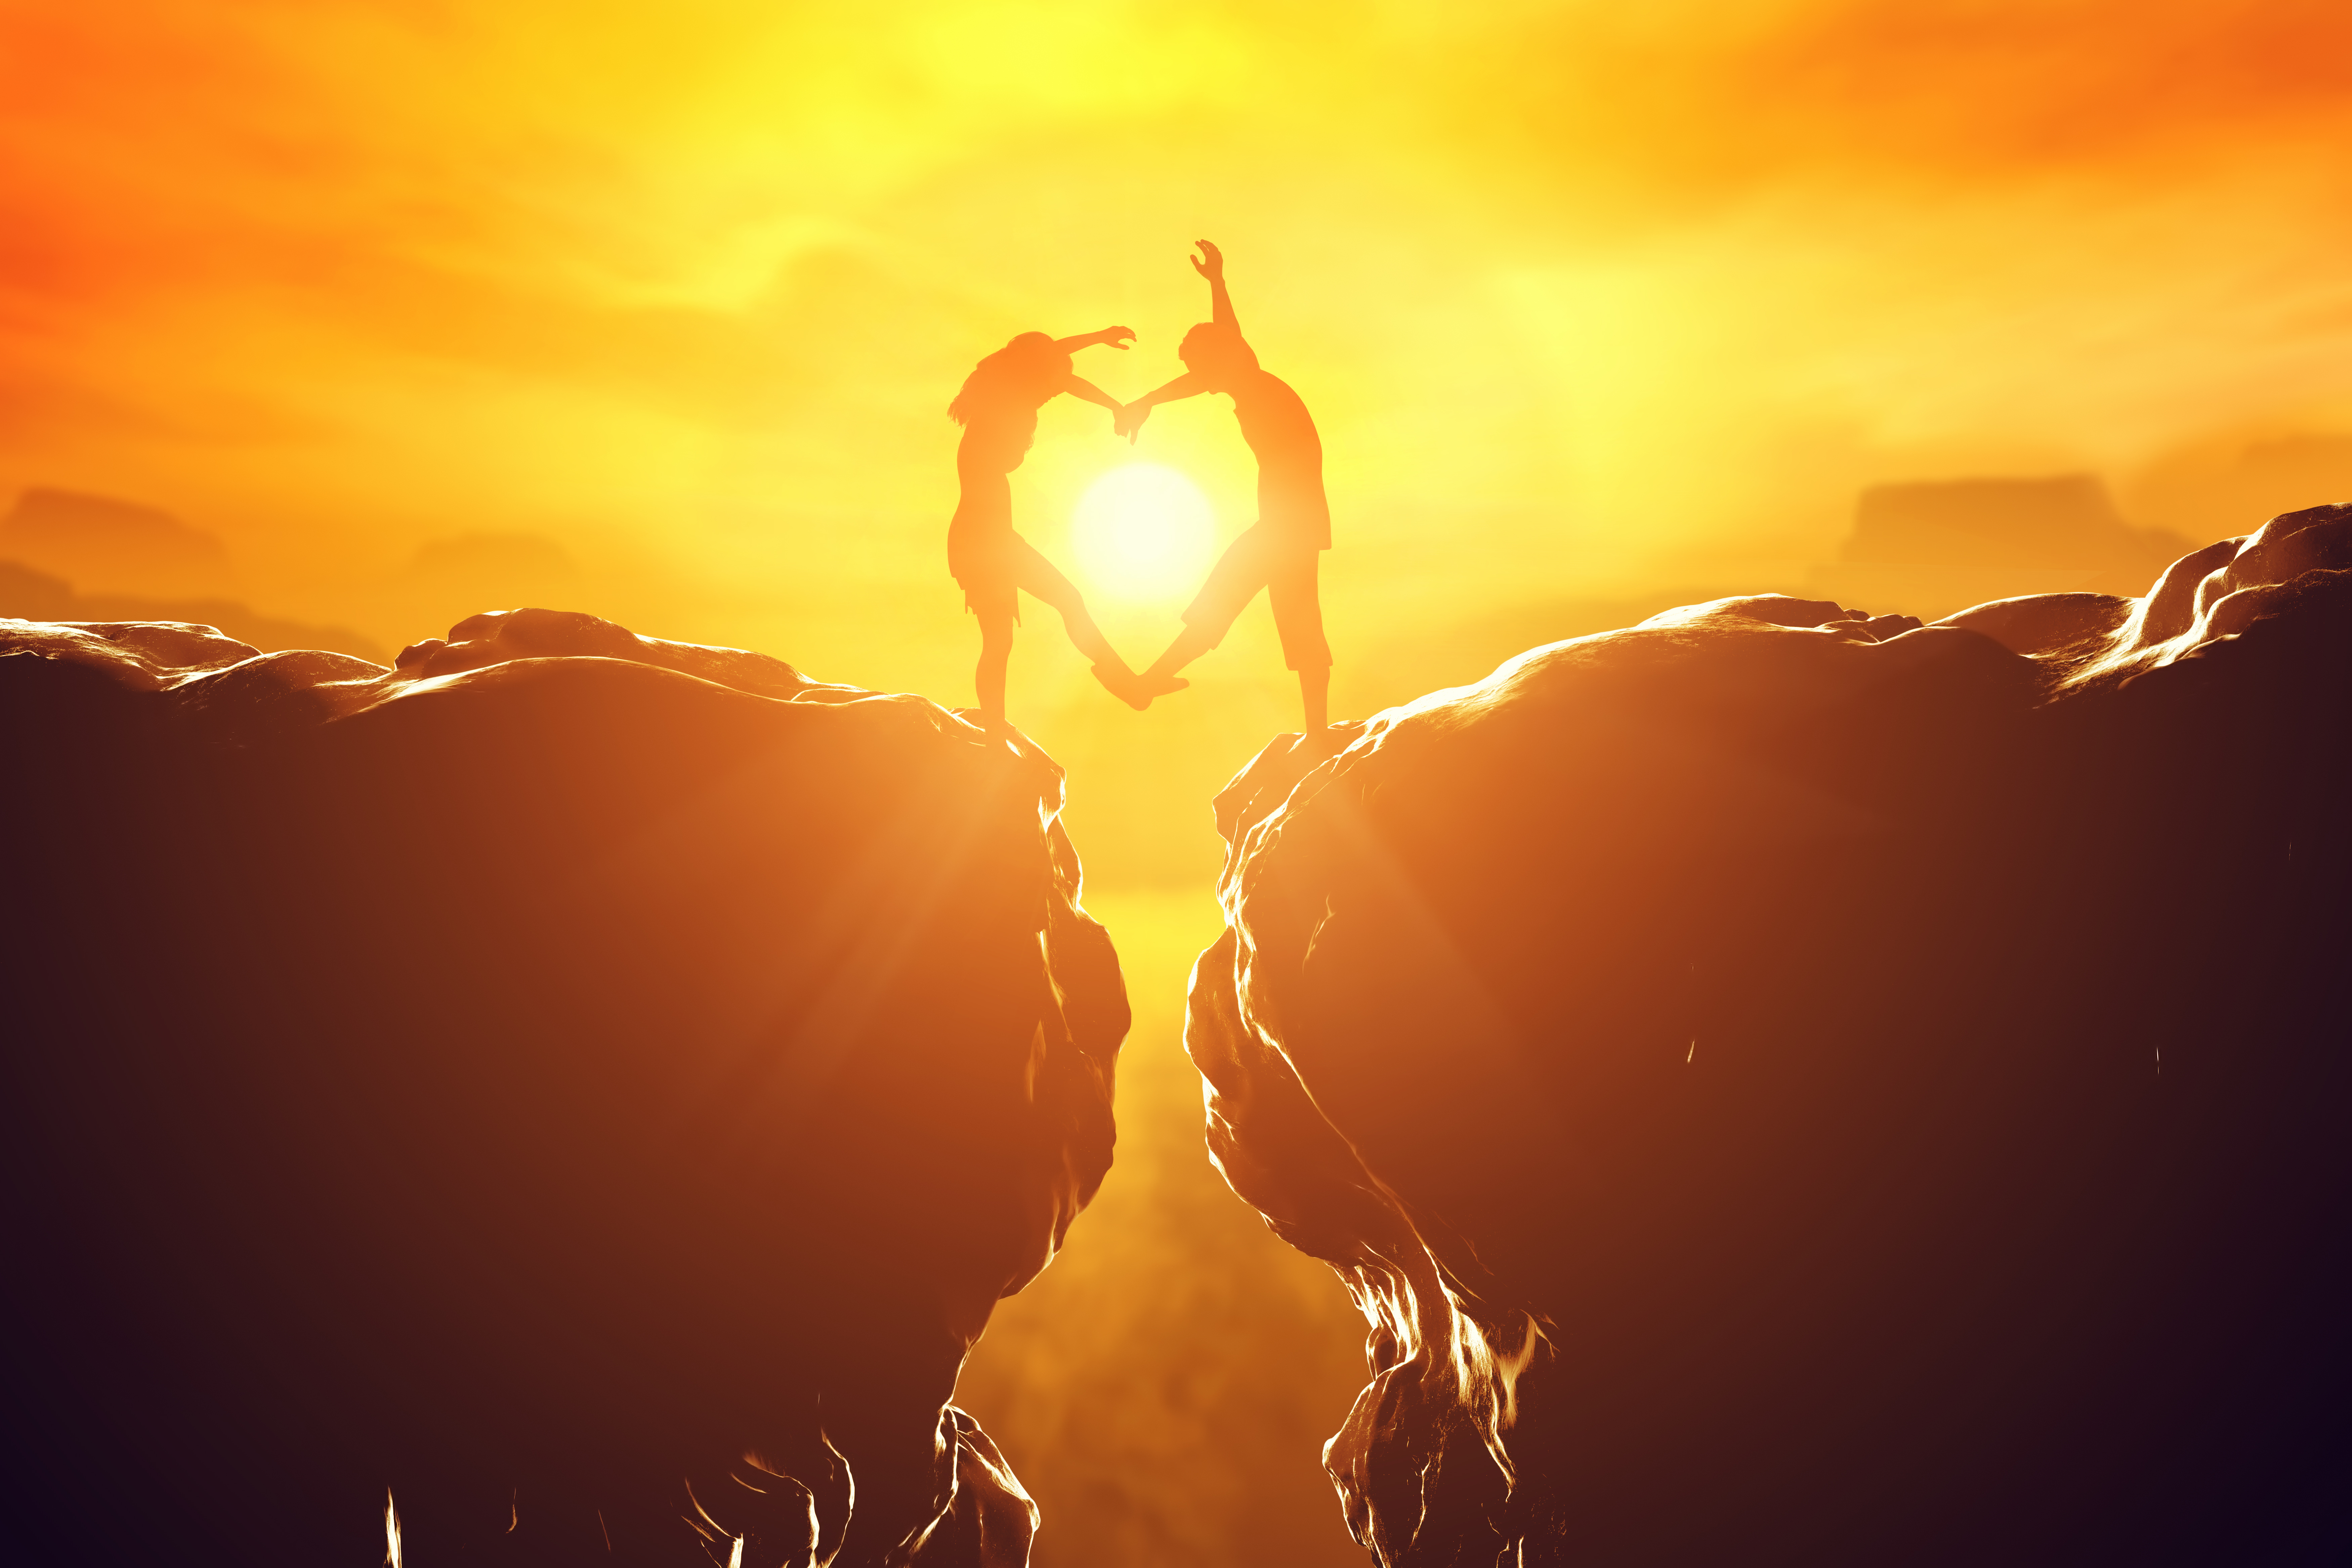 Happy couple making heart shape over precipice between two rocky